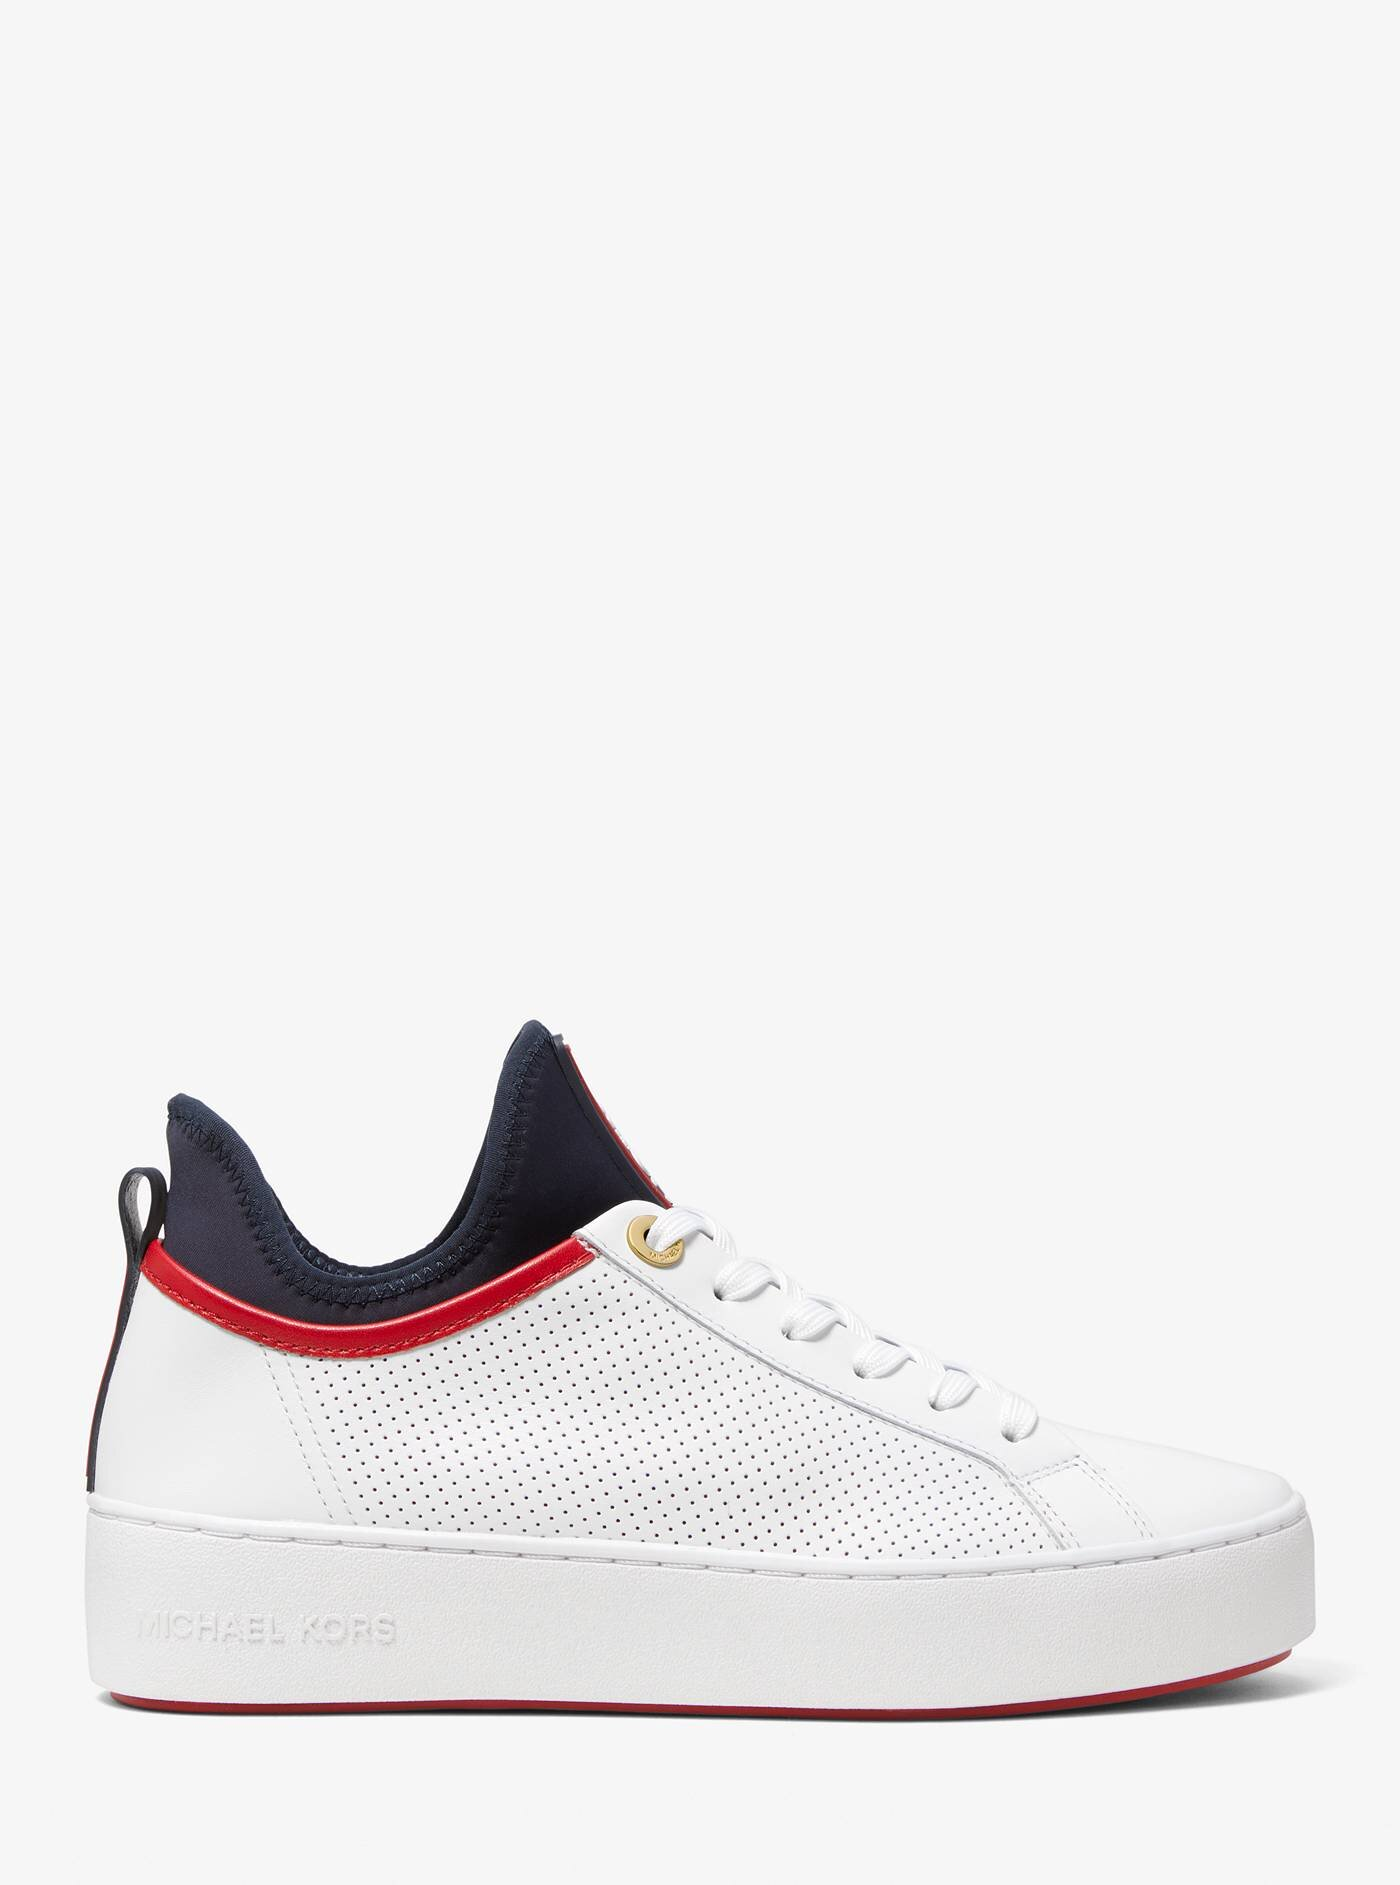 ace perforated leather and scuba sneaker